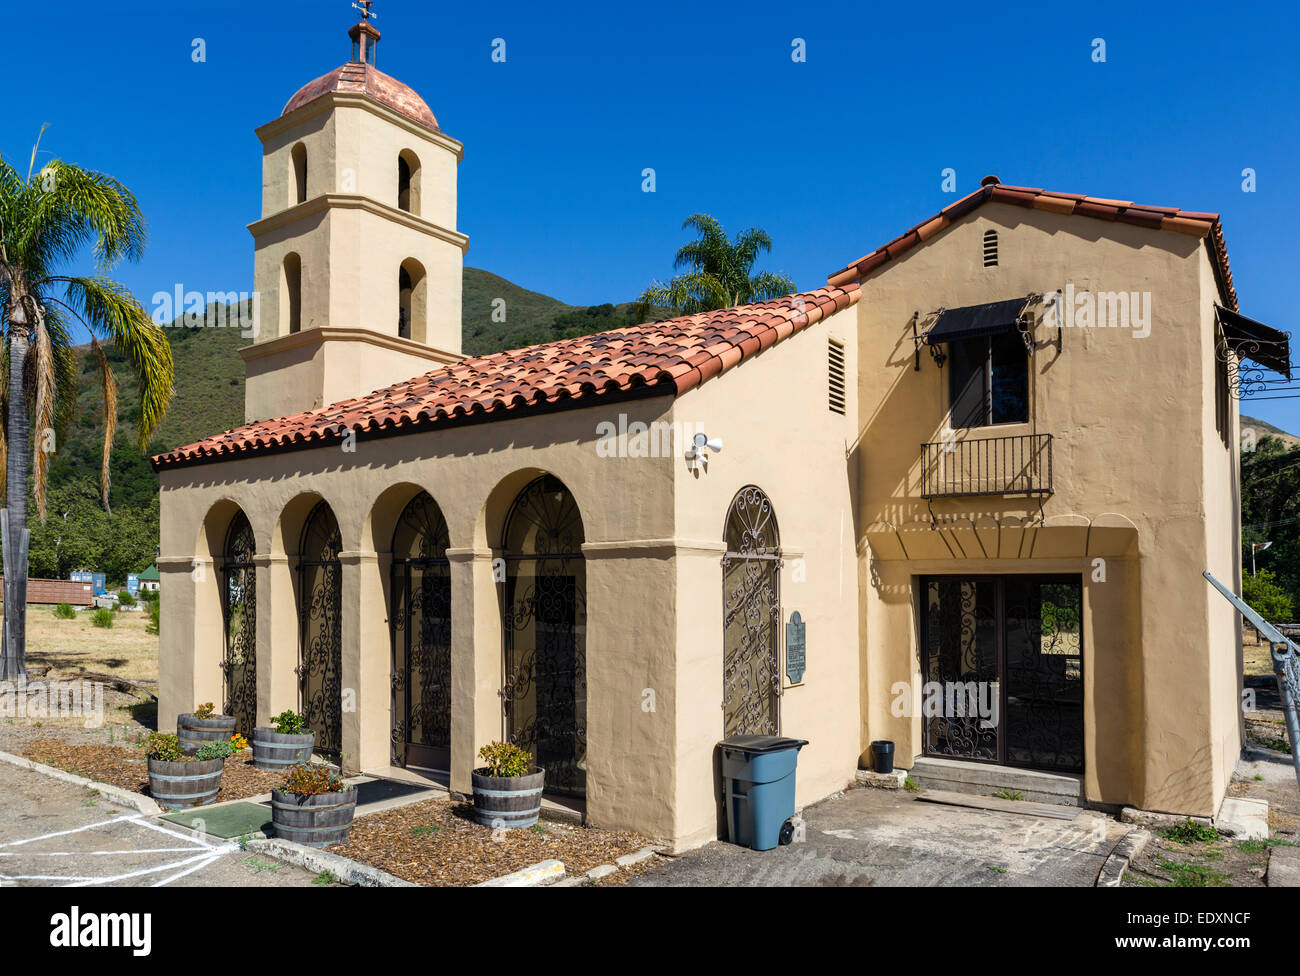 The derelict Motel Inn, formerly the Milestone Mo-Tel, the world's first motel opened in 1925, San Luis Obispo, - Stock Image